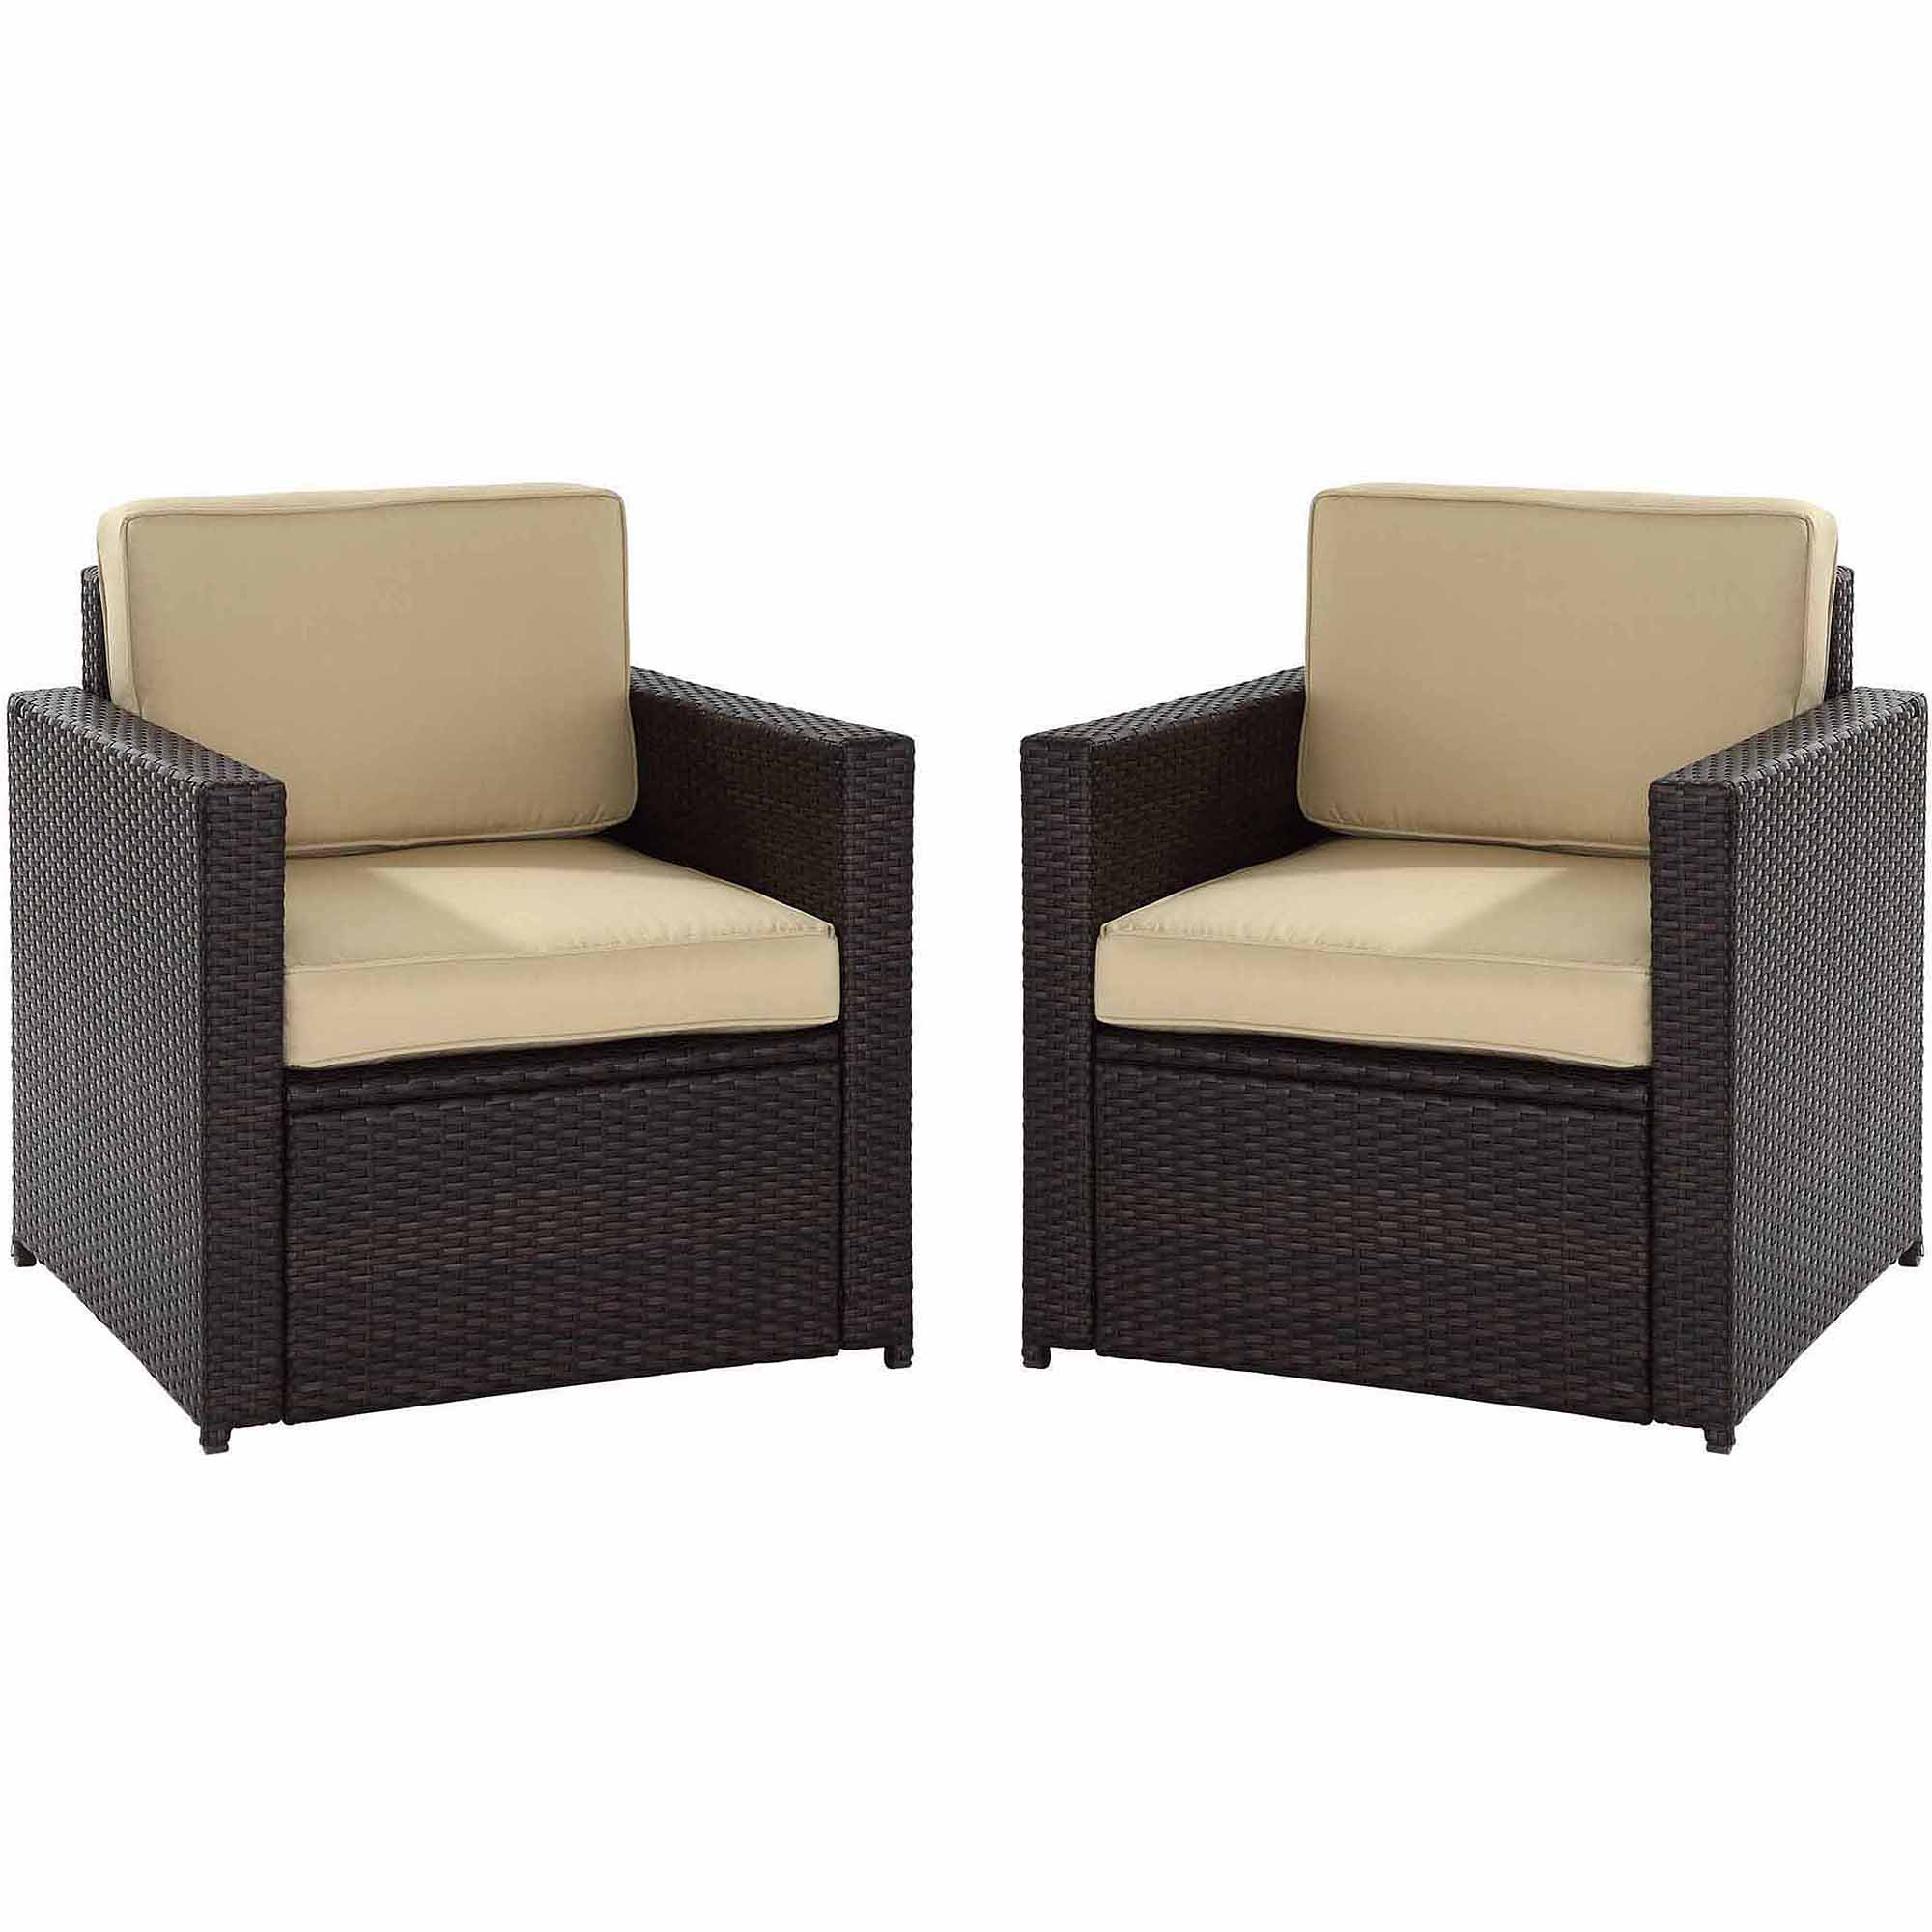 Crosley Furniture Palm Harbor 2 Piece Outdoor Wicker Seating Set    Walmart.com